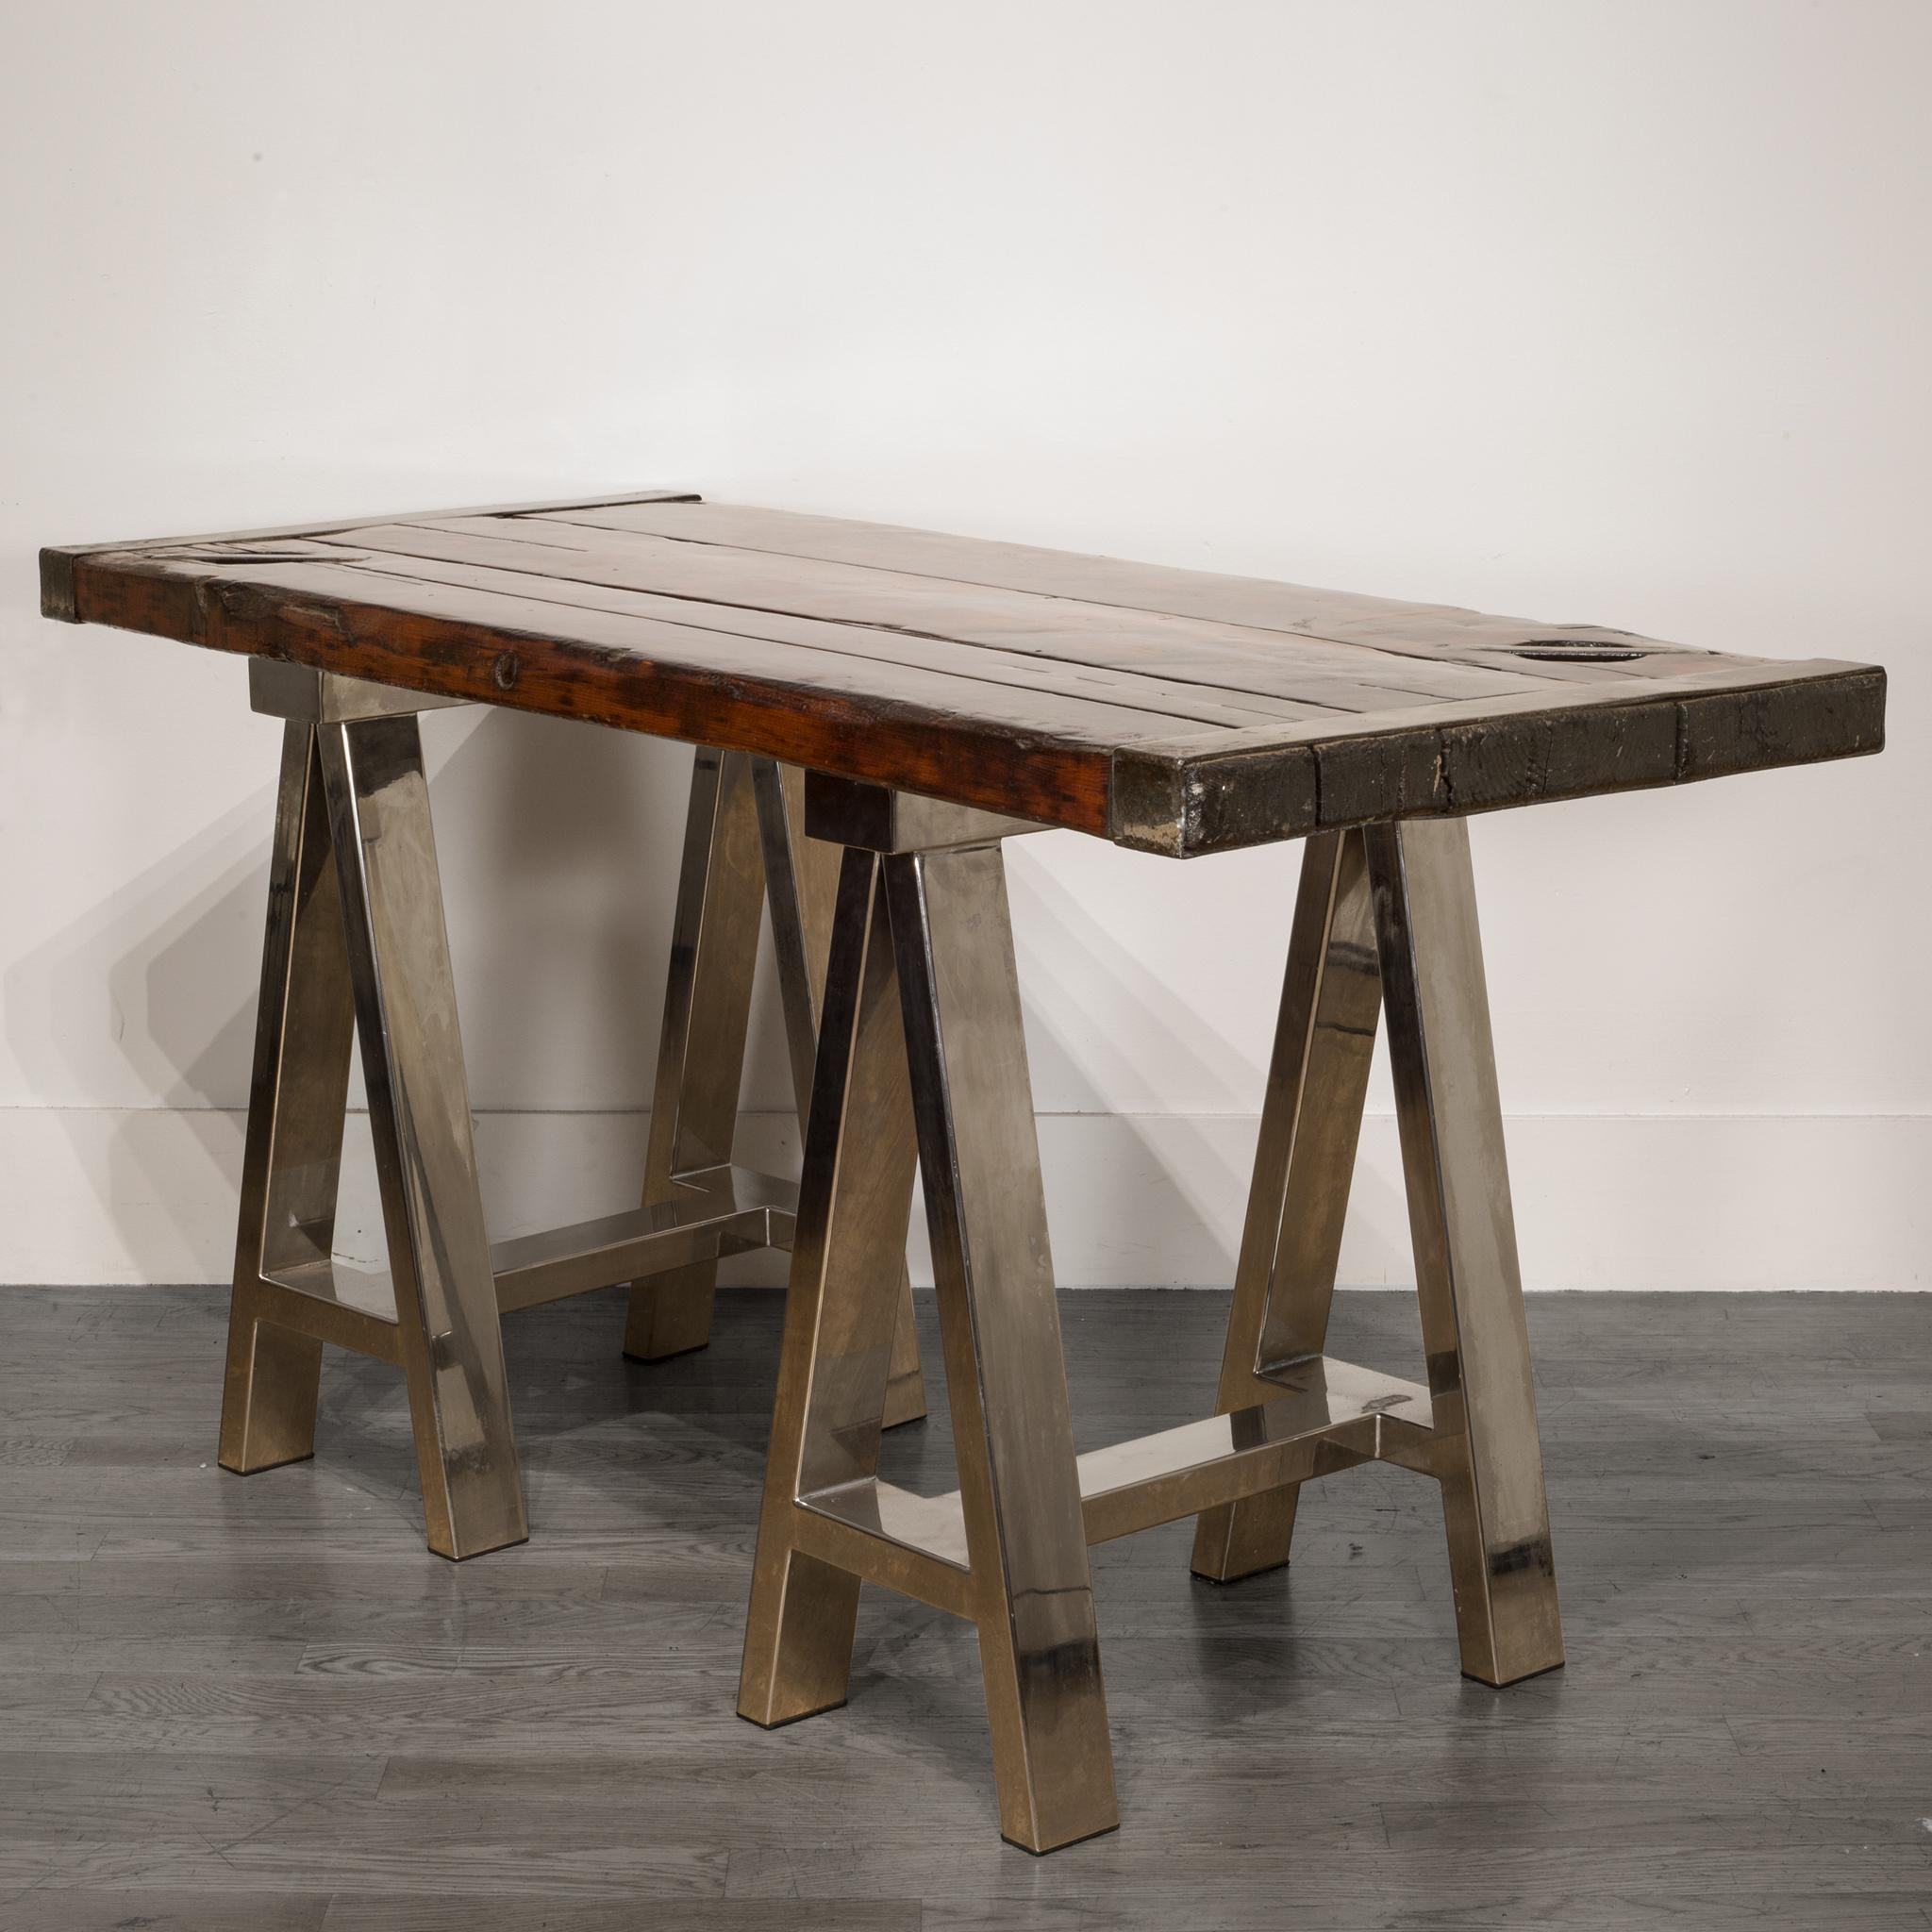 Hatch Cover Table Legs